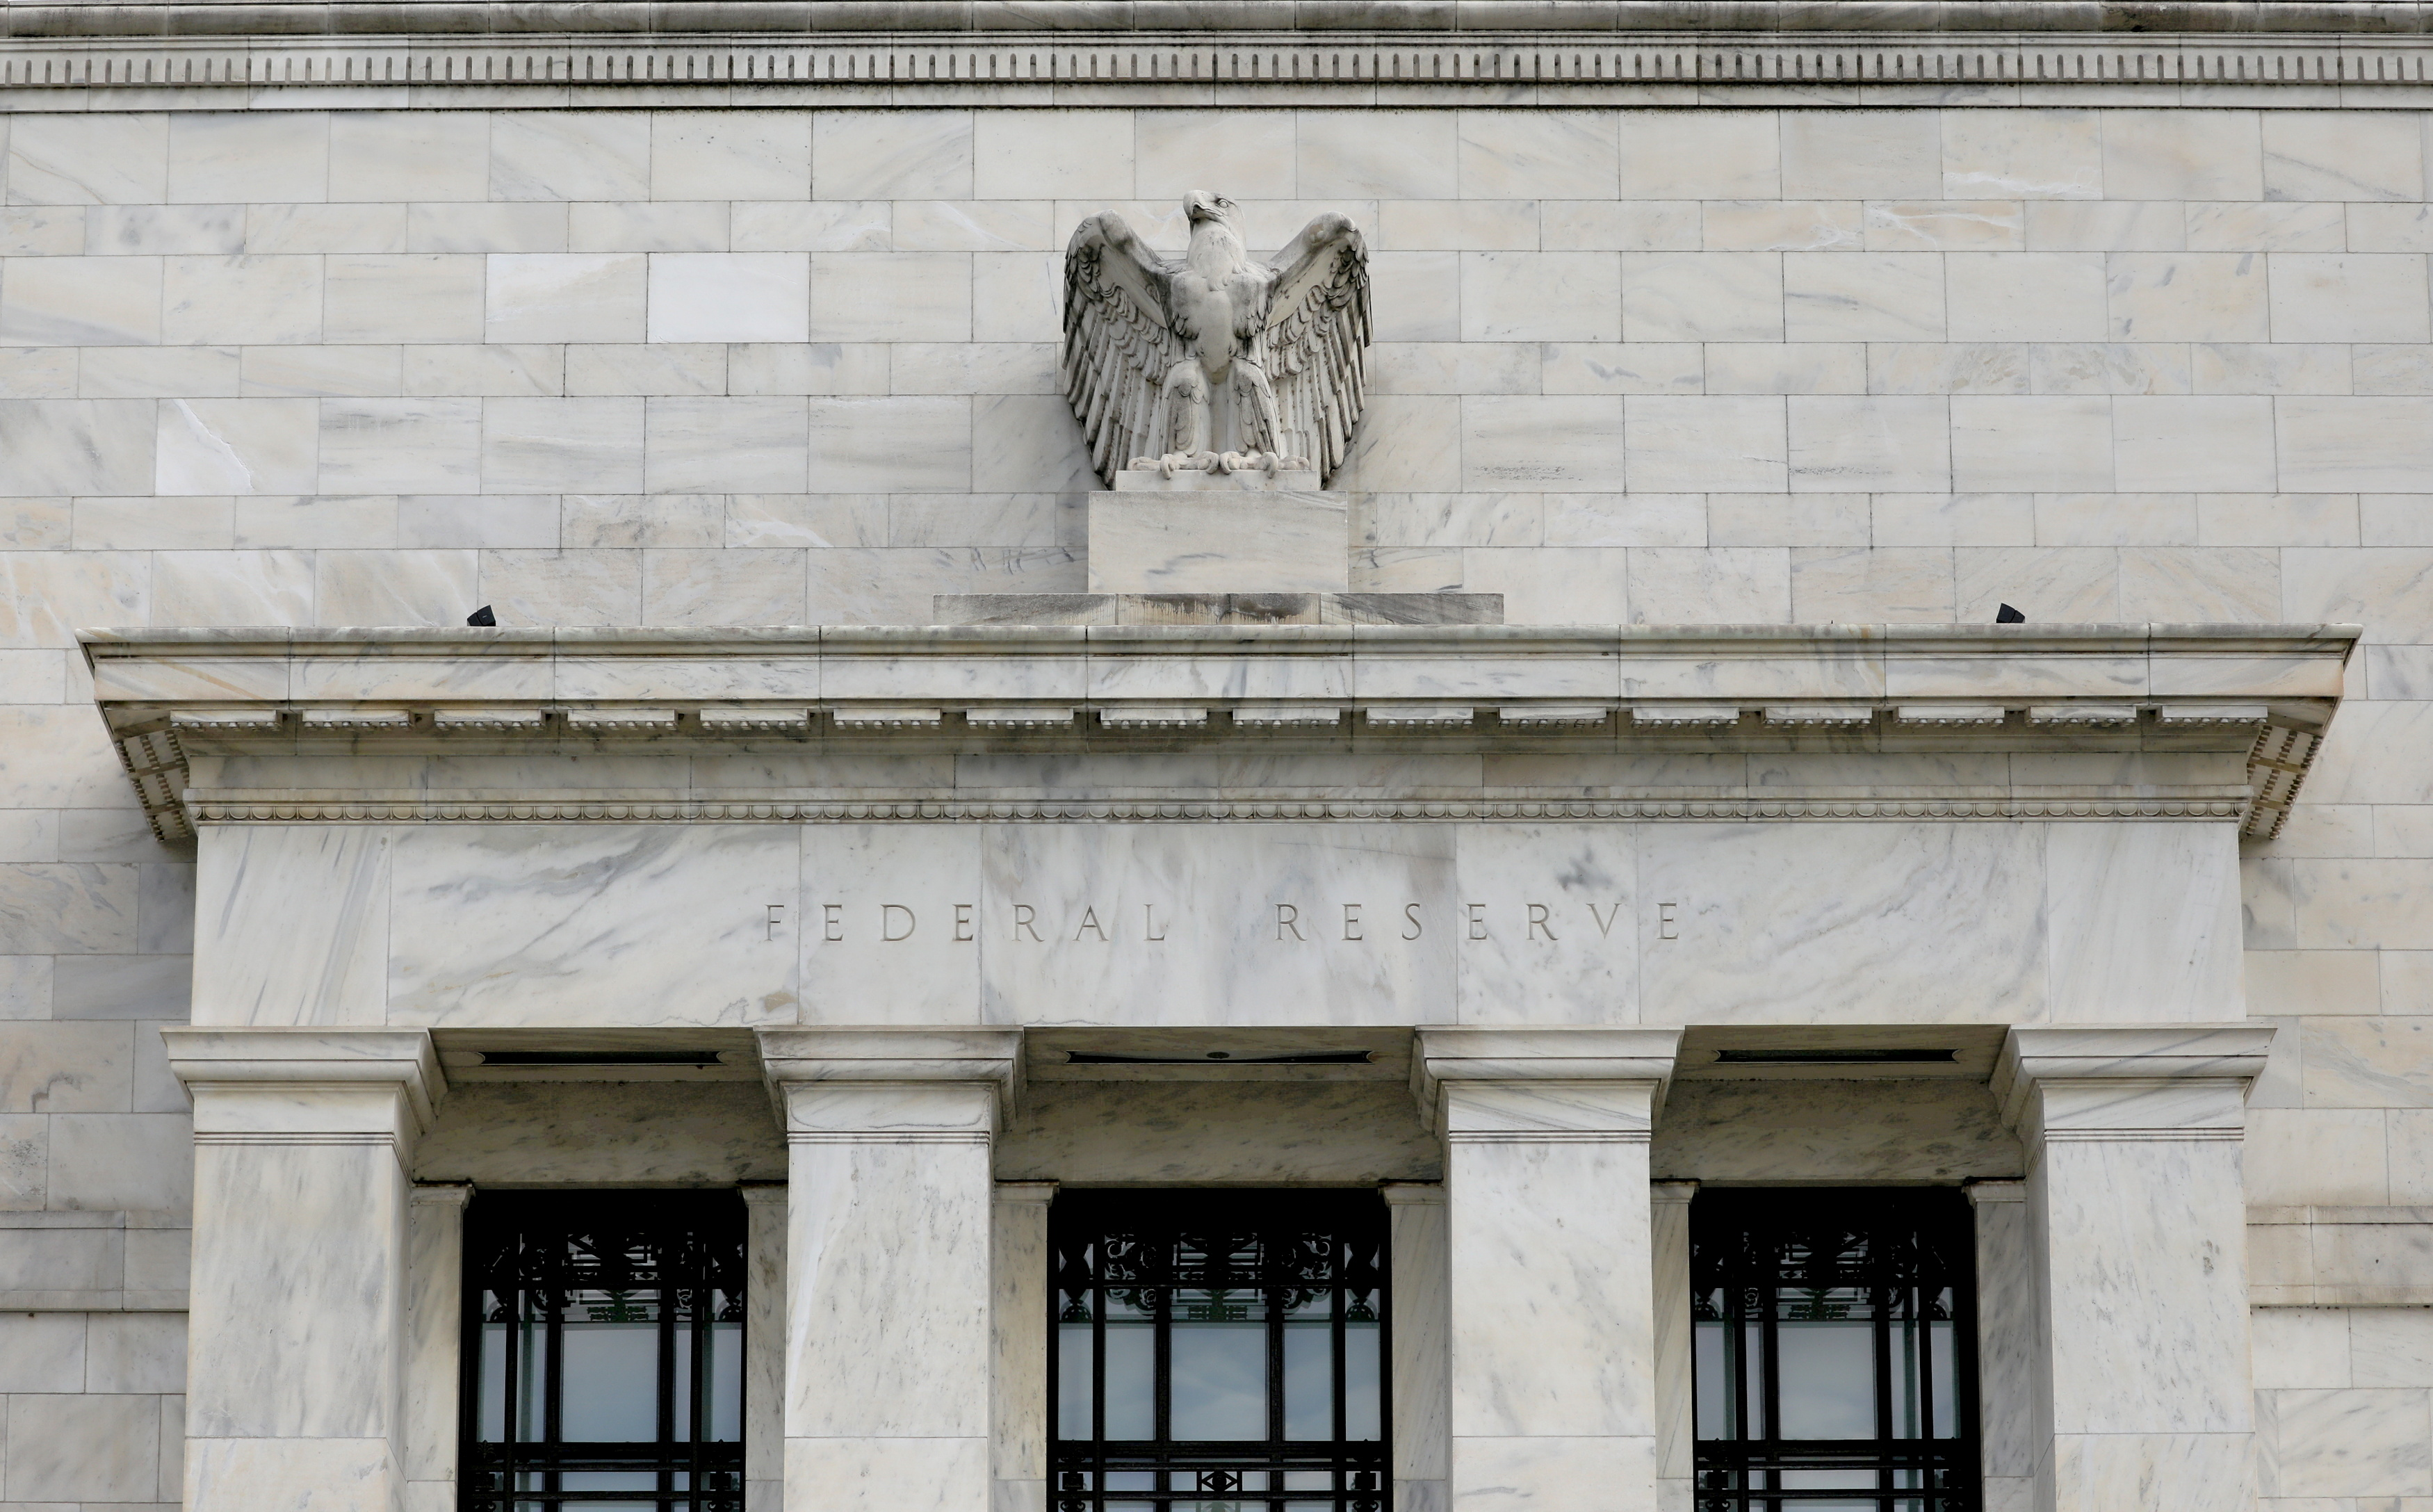 Federal Reserve building is pictured in Washington, DC, U.S., August 22, 2018. REUTERS/Chris Wattie